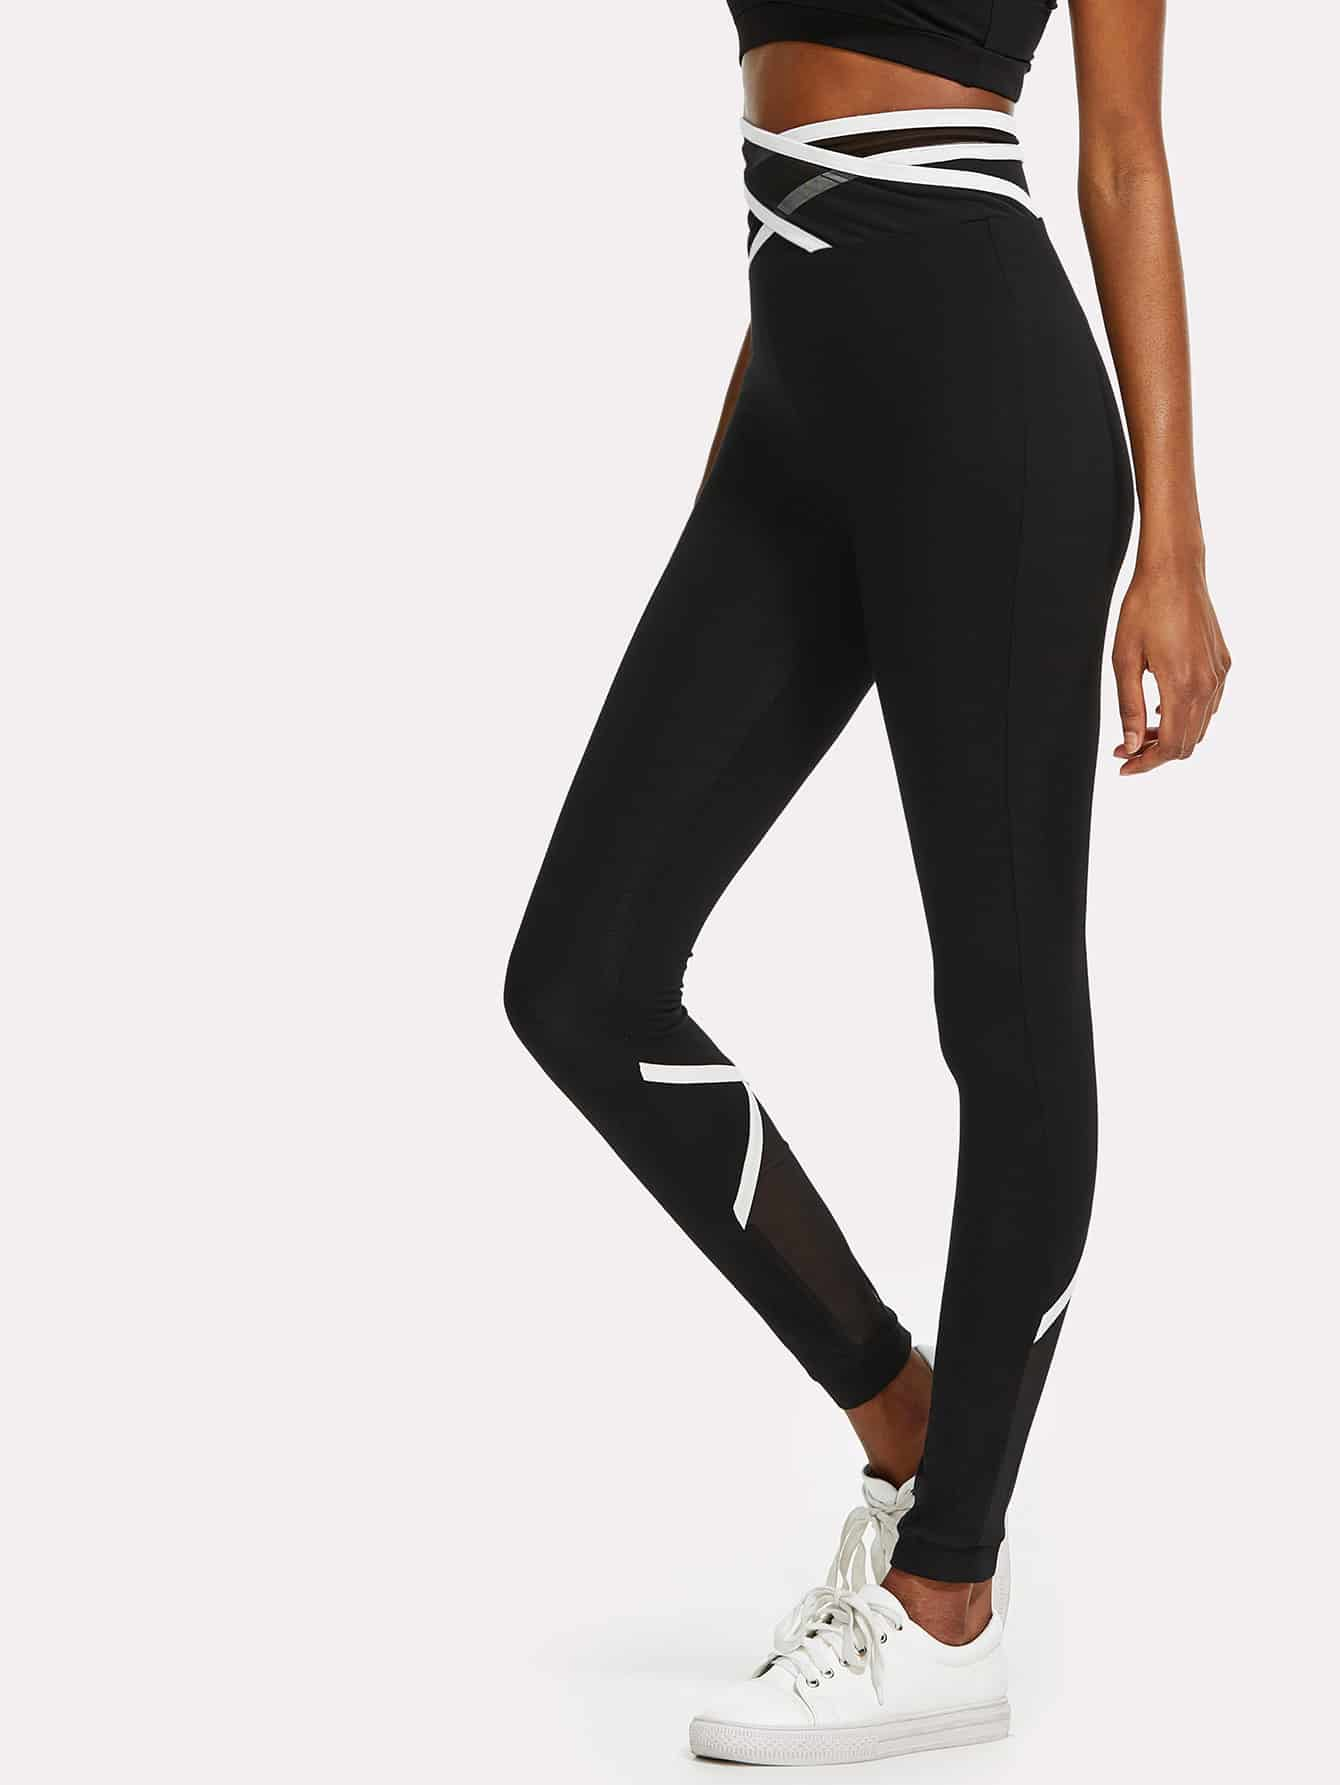 Crisscross Mesh Waist And Back Leggings